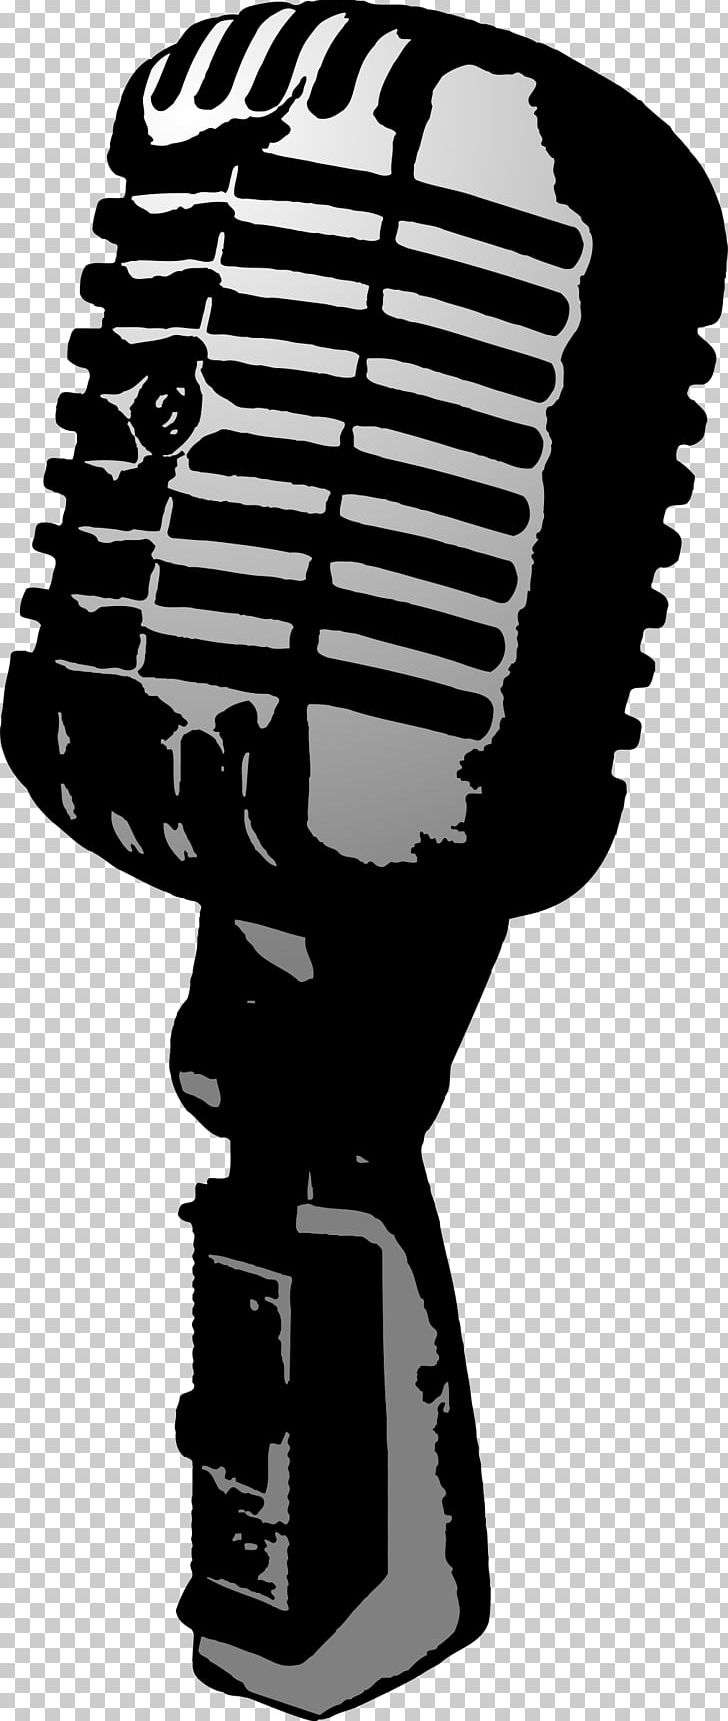 Microphone PNG, Clipart, Animation, Audio, Audio Equipment, Black And White, Cartoon Free PNG Download